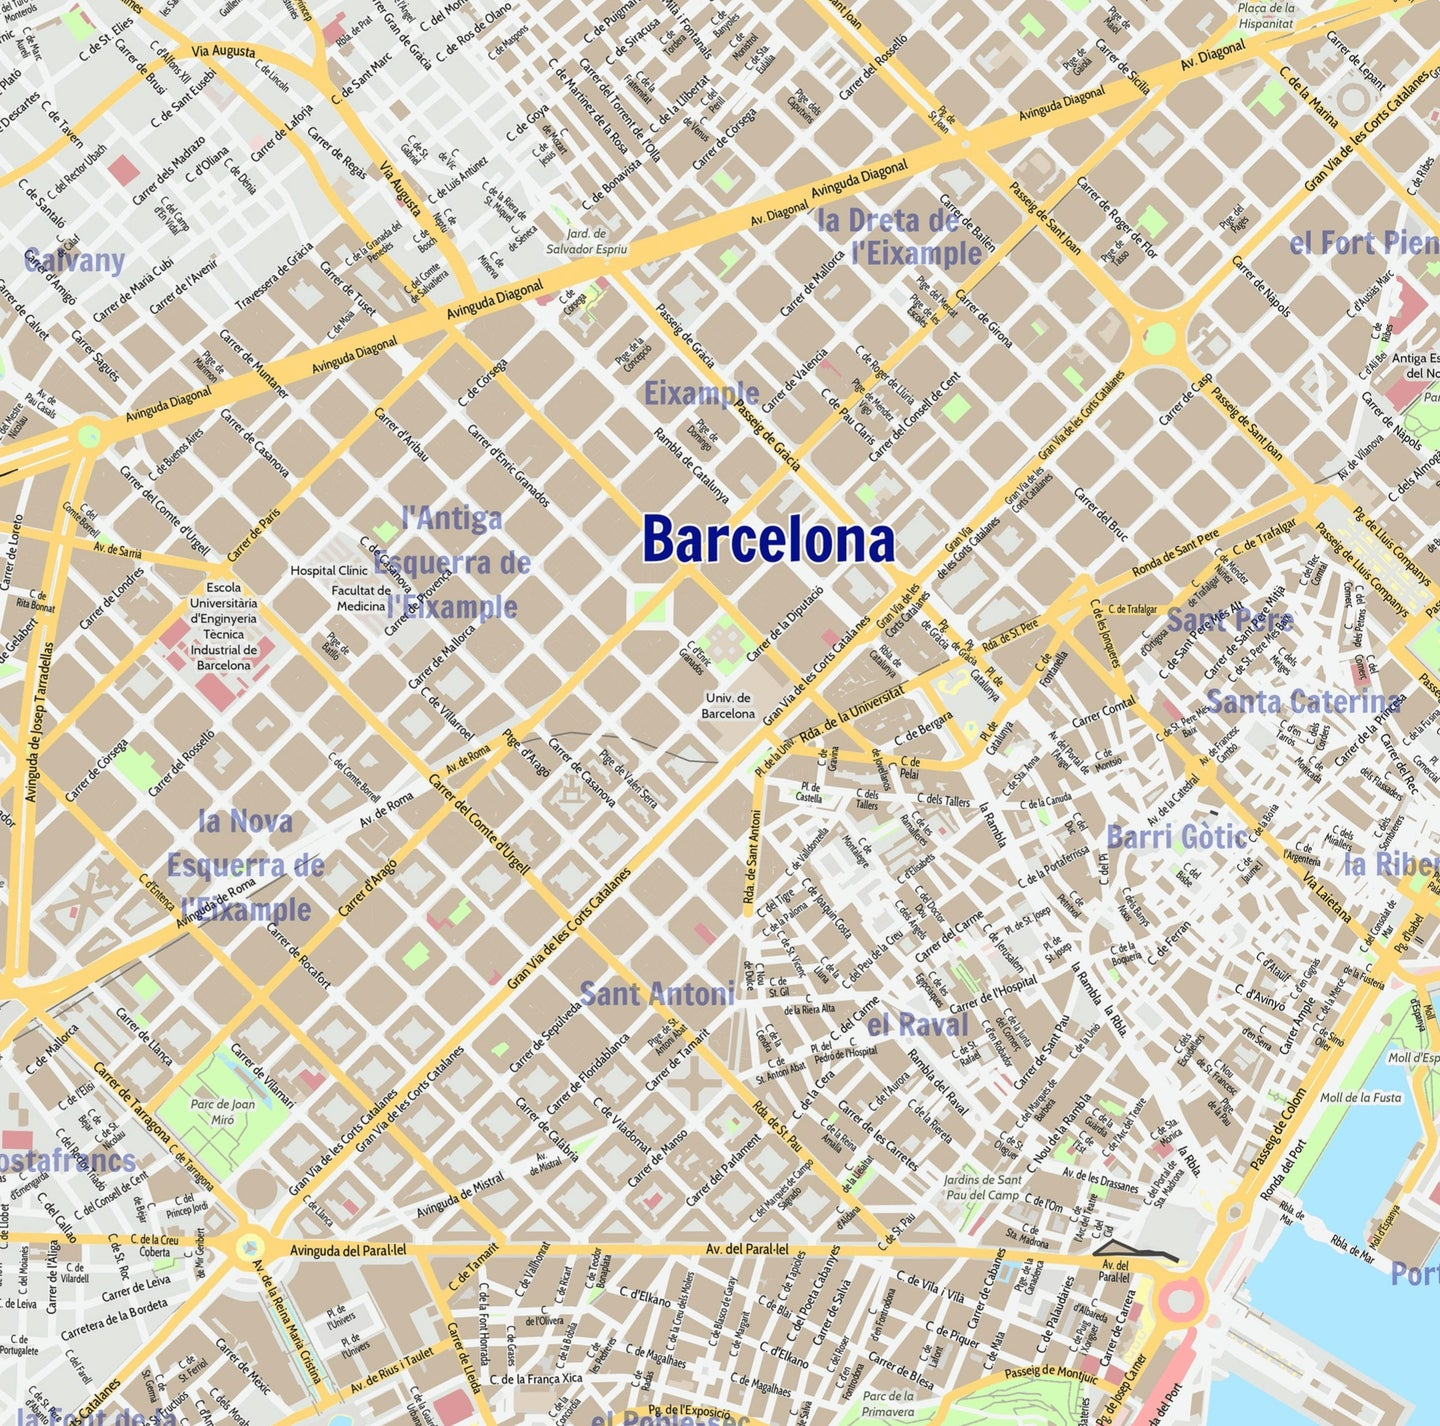 Barcelona City Map - Laminated Wall Map of Barcelona, Spain on map of kiev city, map of zhuhai city, map spain city, map of malta city, map of danang city, map of ulan bator city, map of juba city, map of switzerland city, map of bucharest city, map of chiang rai city, map of rio de janeiro city, map of quito city, about barcelona city, map of nagoya city, map of sharjah city, map of toledo city, map of bulawayo city, map of dallas city, map of kunming city, map of queen city,